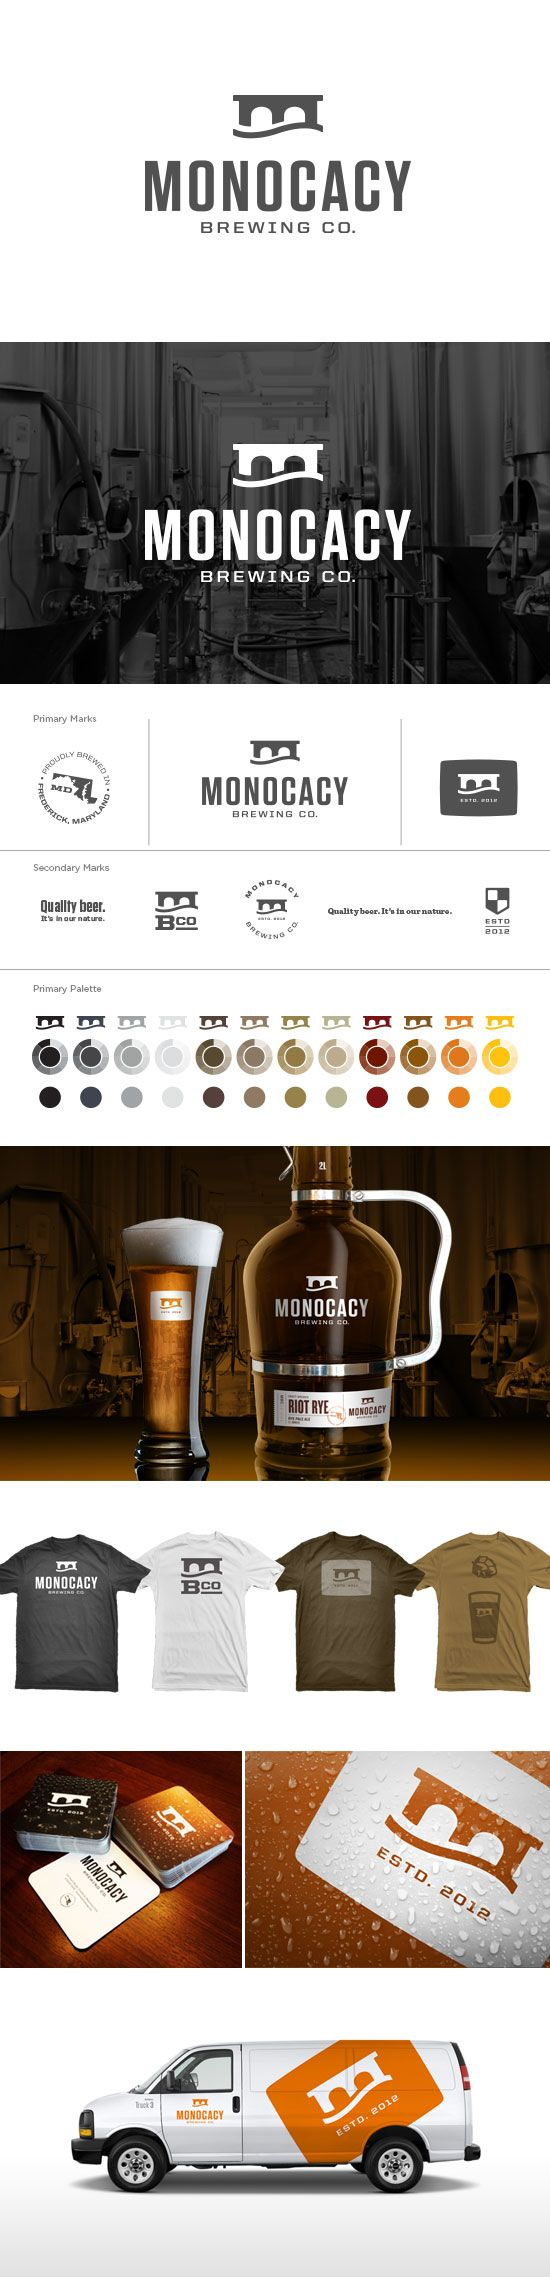 Monocacy Brewing Co. / tribe